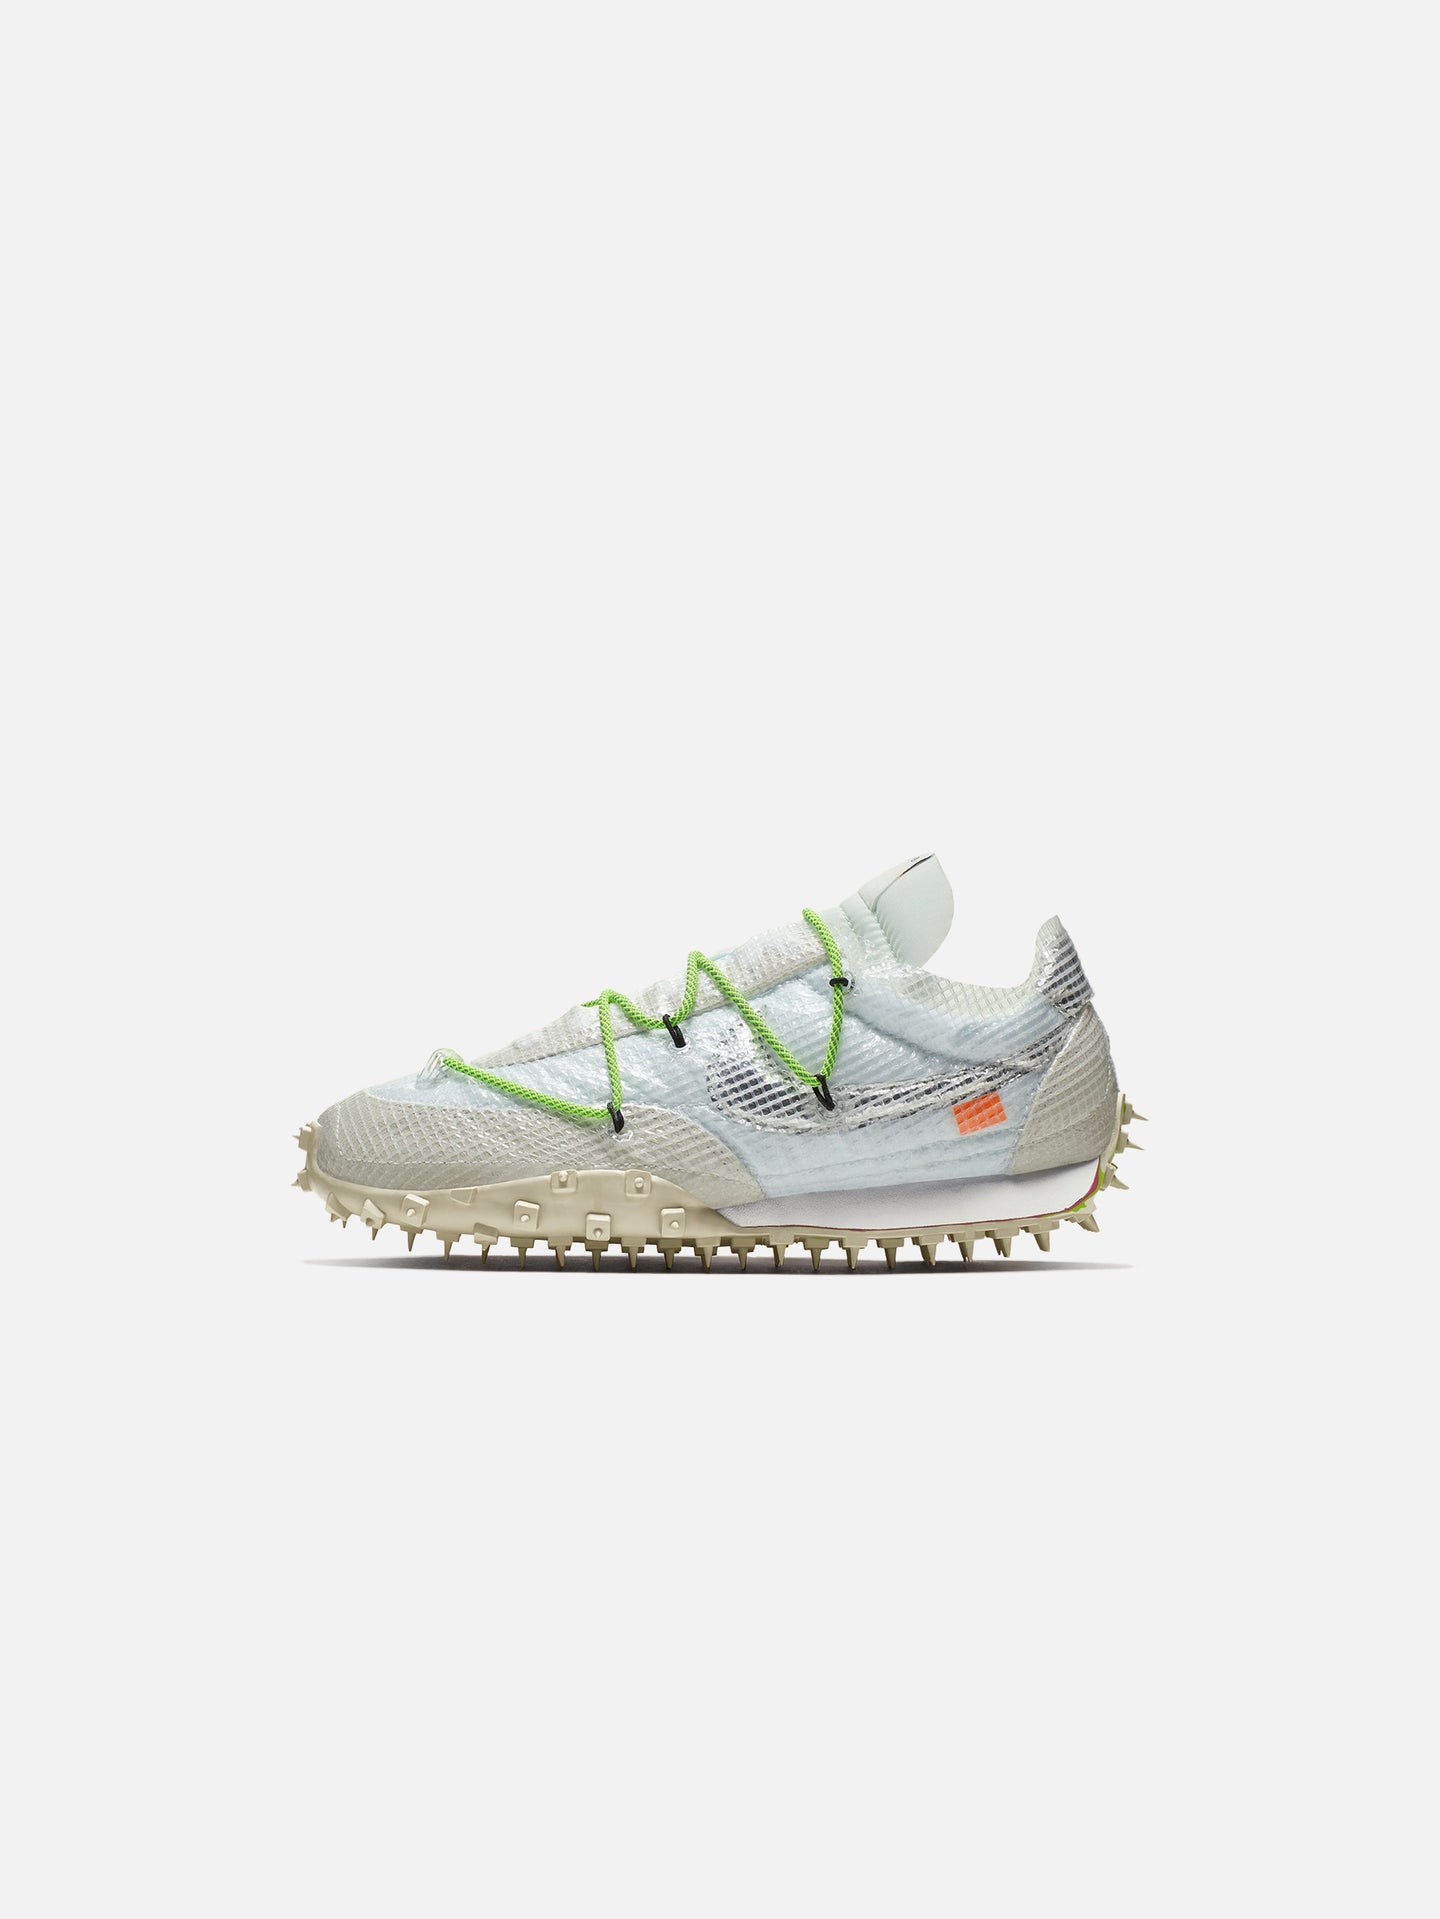 x OFF-WHITE™ WAFFLE RACER: WHITE/ELECTRIC GREEN